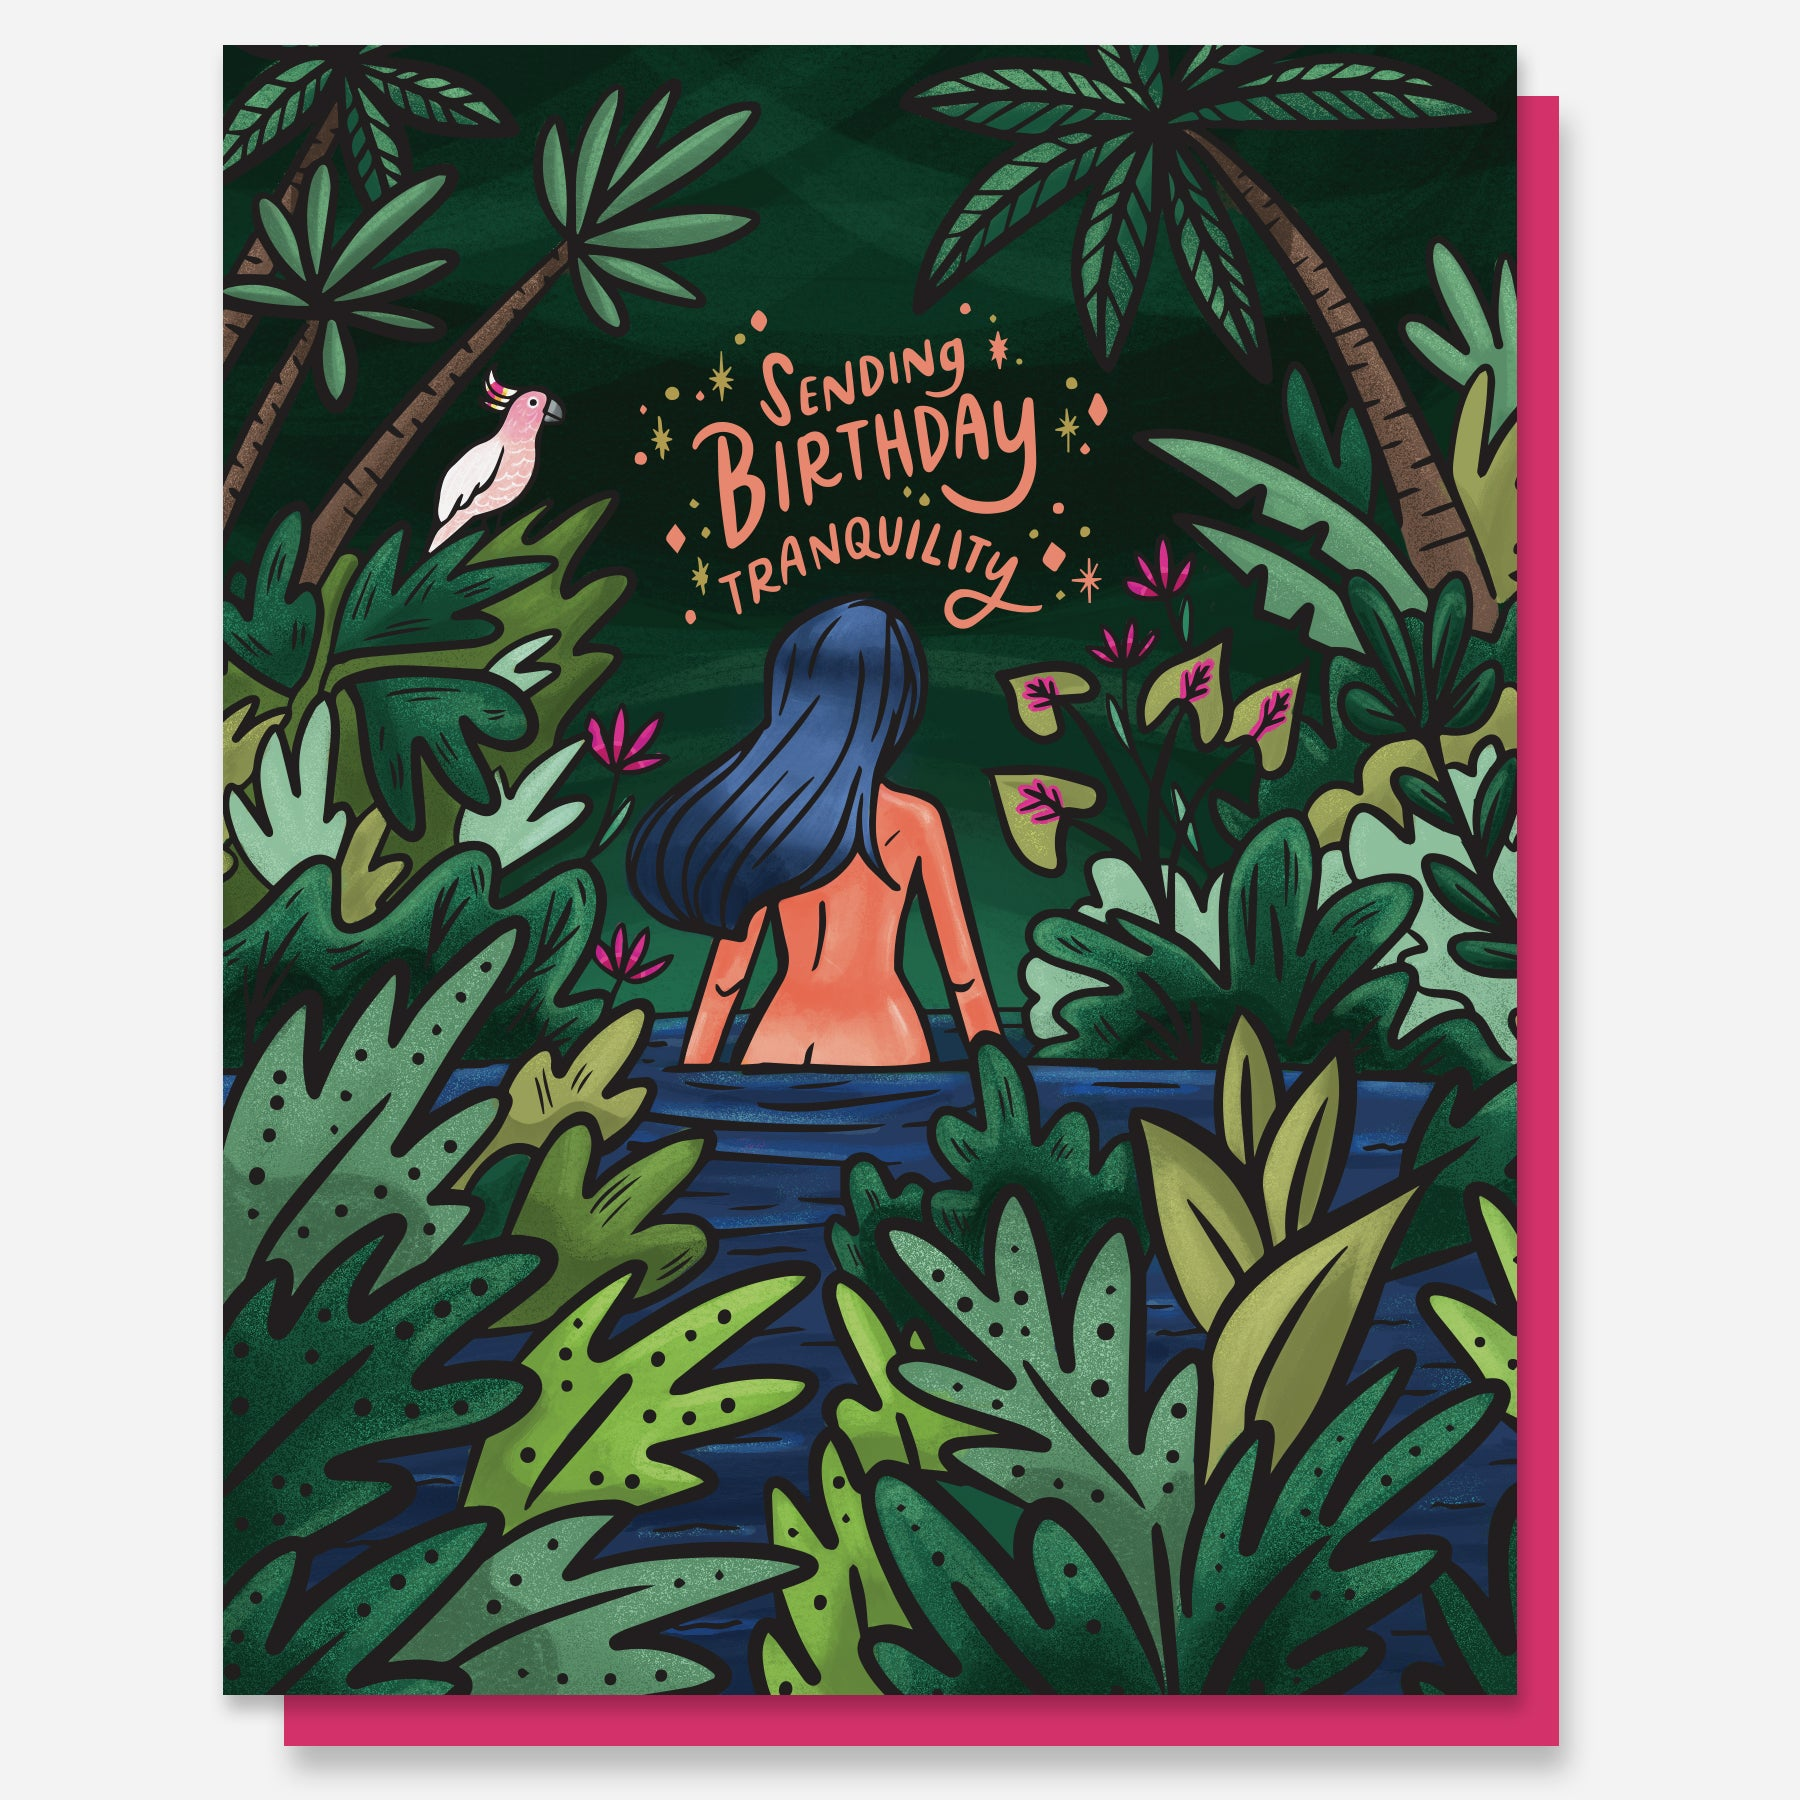 Birthday Tranquility Card